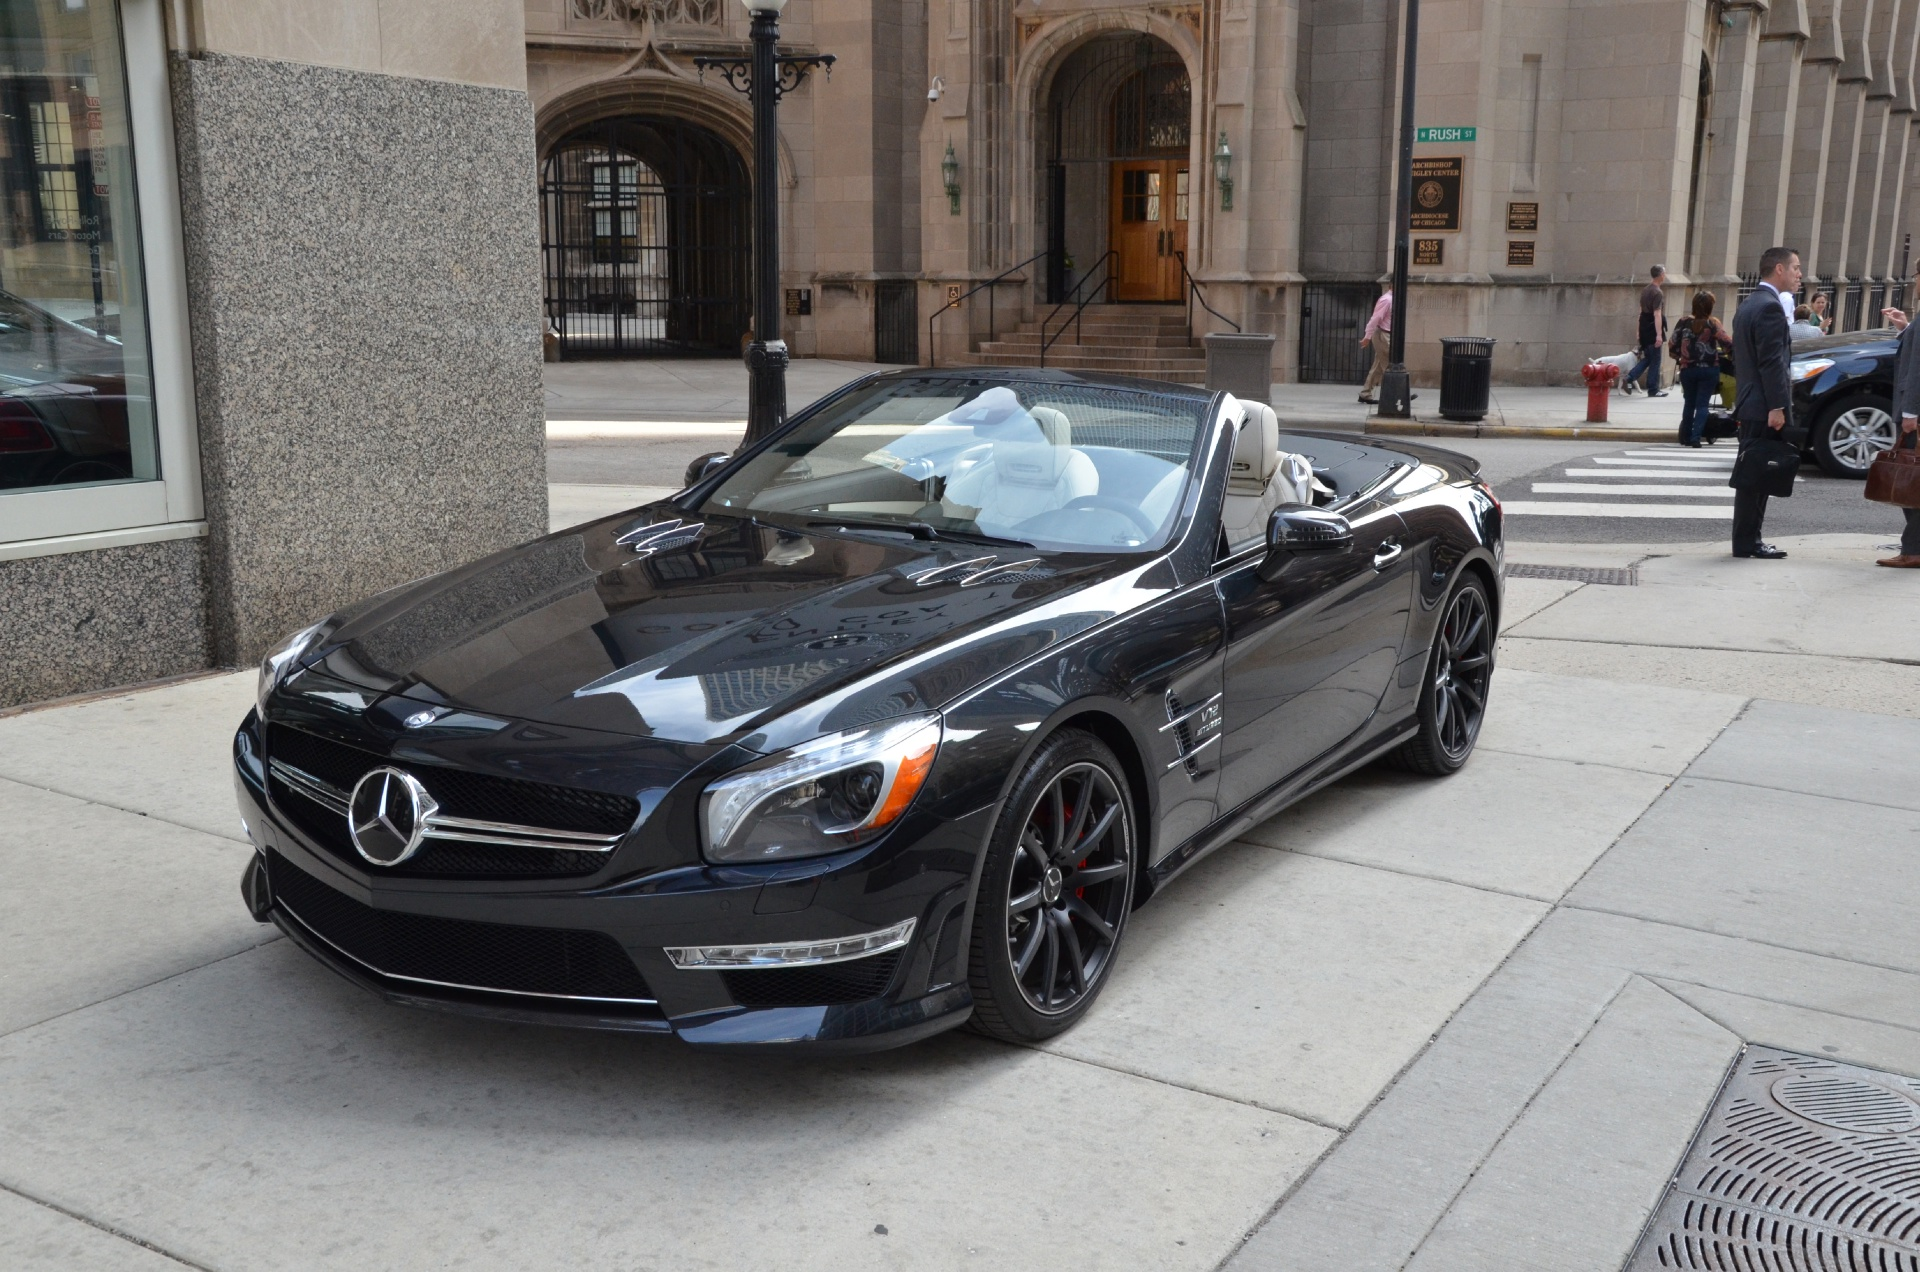 2013 mercedes benz sl class sl65 amg stock gc1287 for for Mercedes benz dealerships in chicago area